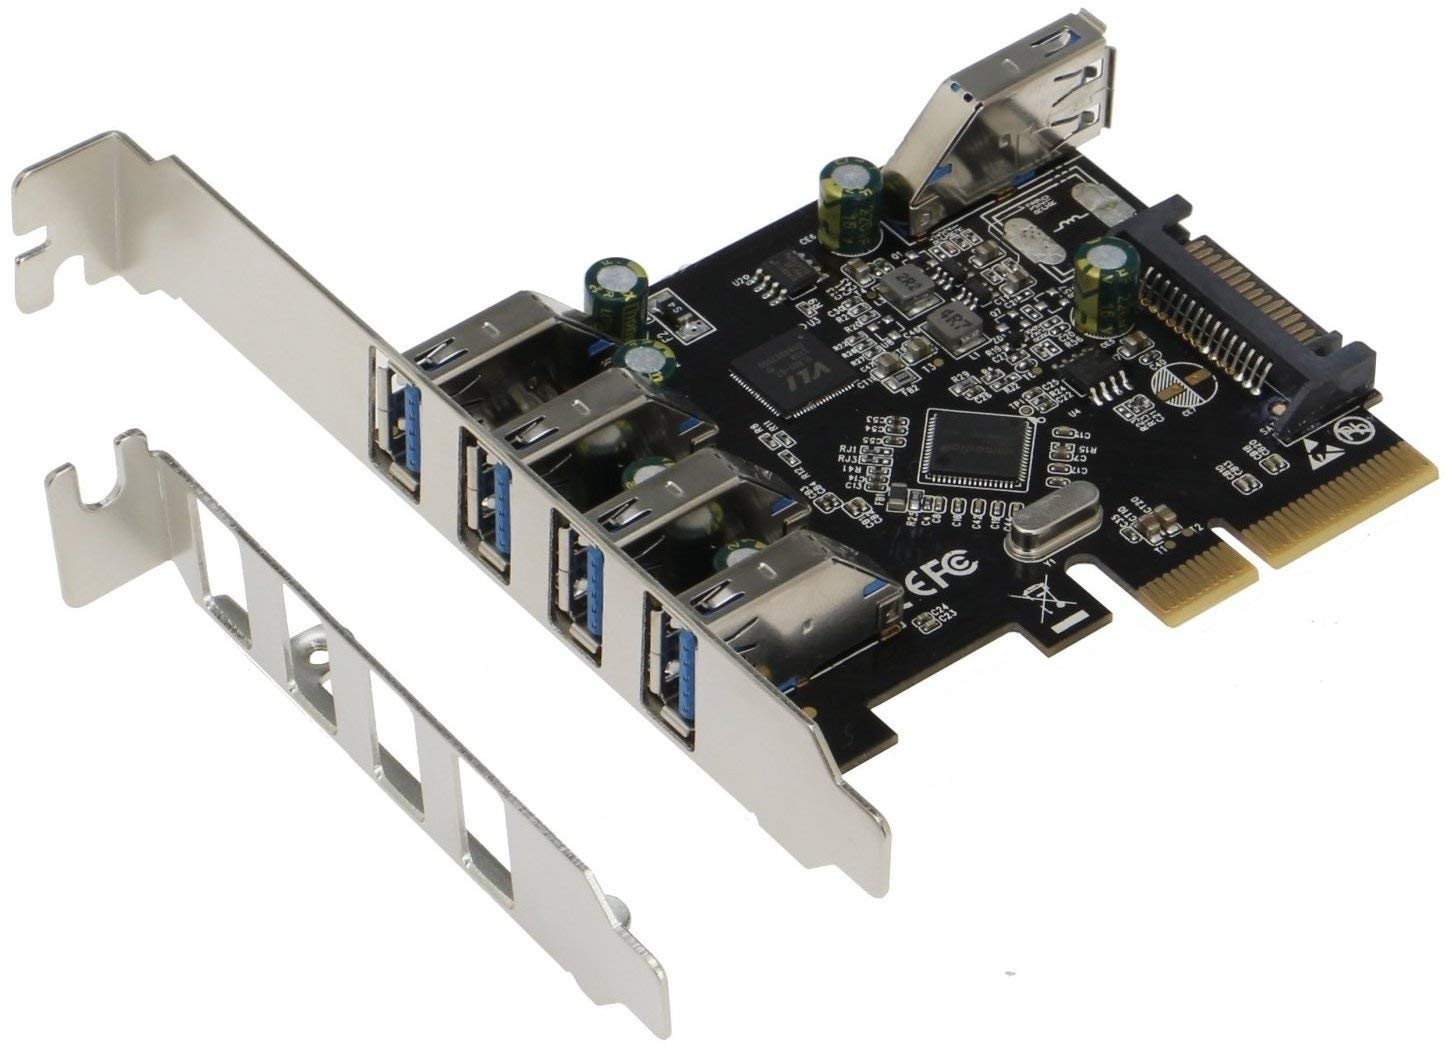 Sedna - PCIe 5 Port (4E1I) USB 3.1 Gen II (10Gbps) Adapter Card with Low and Standard Profile Brackets by Sedna